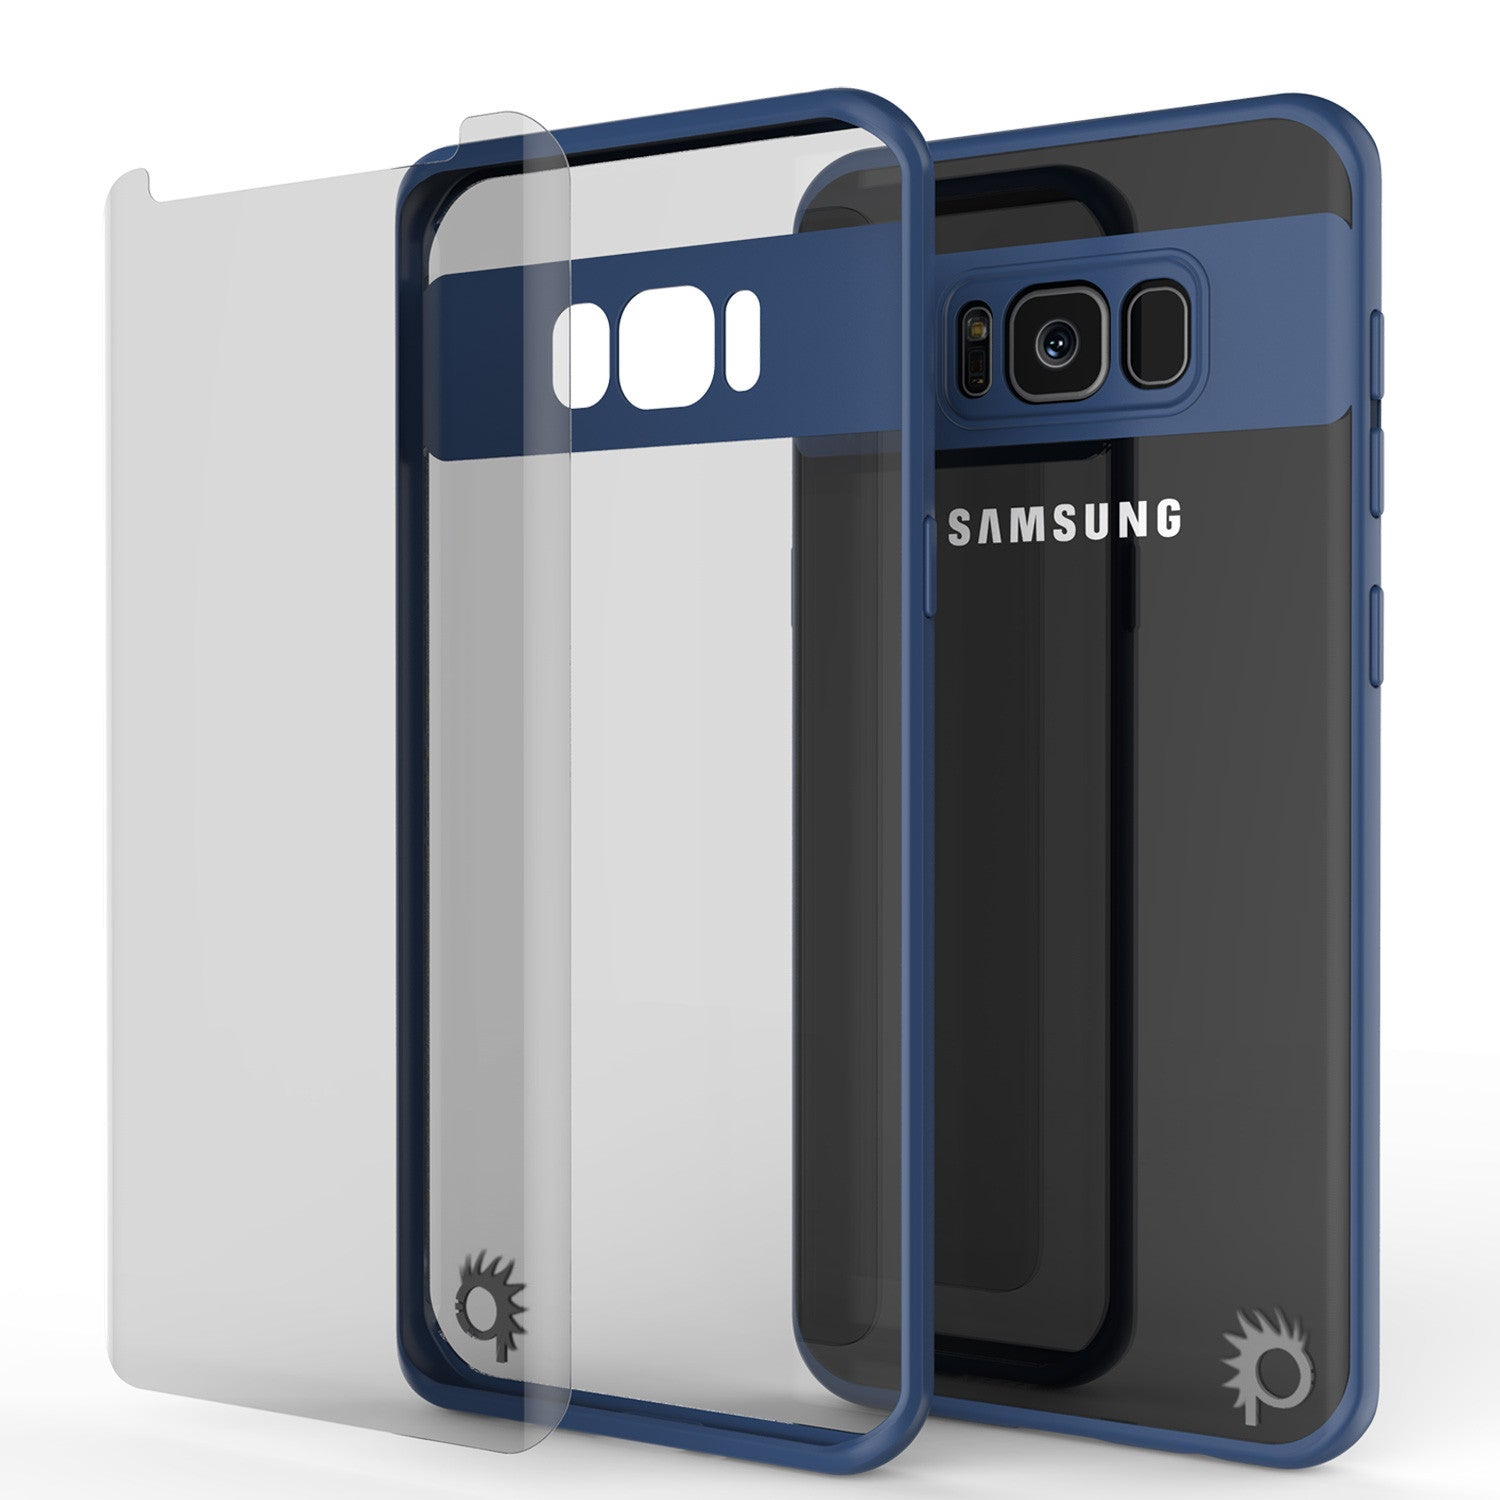 Galaxy S8 Plus Case, Punkcase [MASK Series] [NAVY] Full Body Hybrid Dual Layer TPU Cover W/ Protective PUNKSHIELD Screen Protector